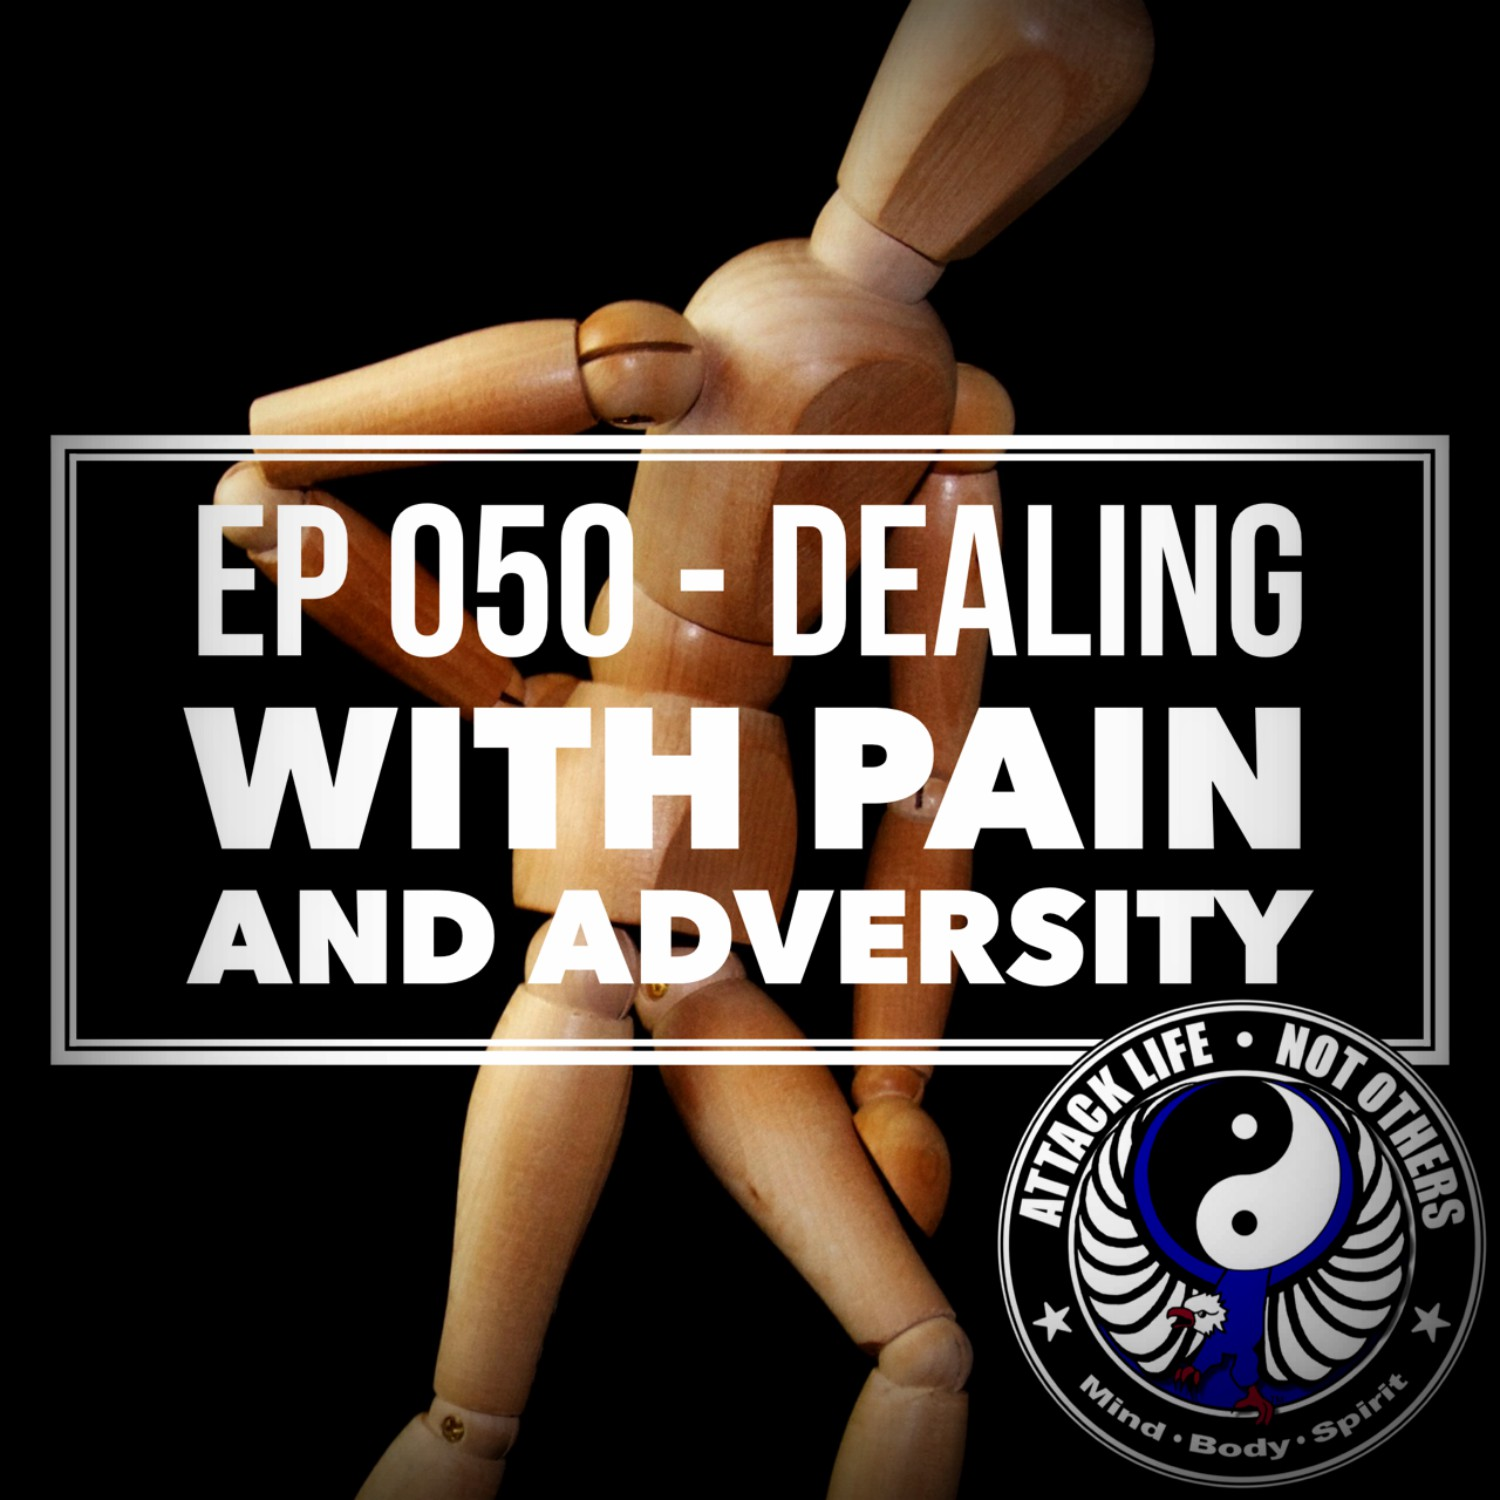 Hoover Karate podcast, Tim Hoover, Steve Mittman, dealing with pain and anxiety